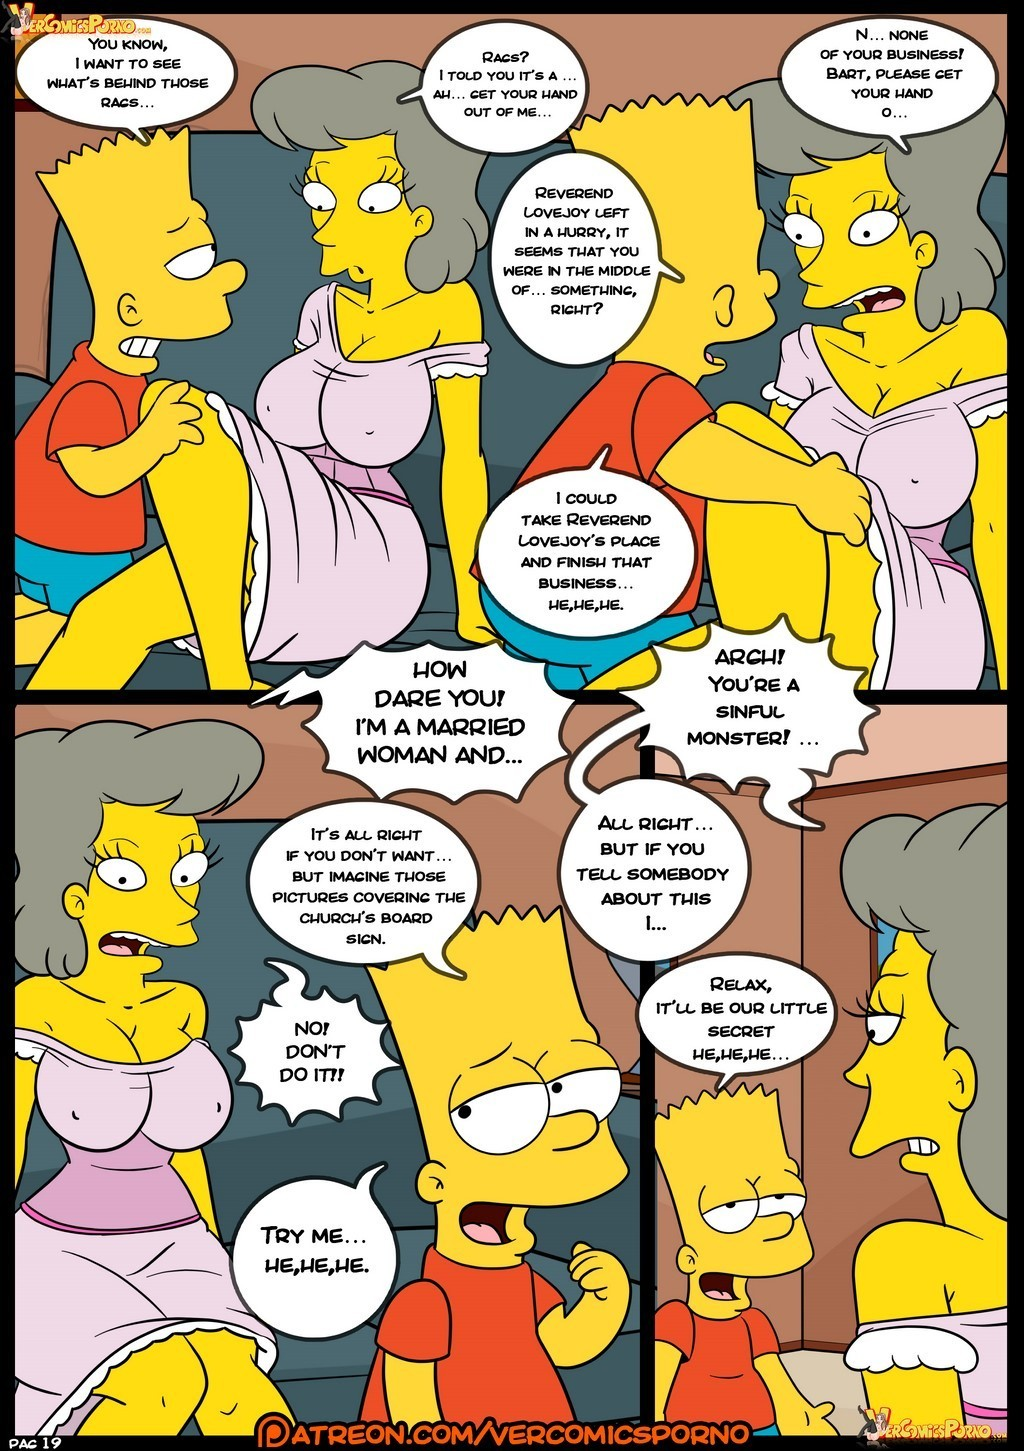 20 3 - The Simpsons. Part 8.